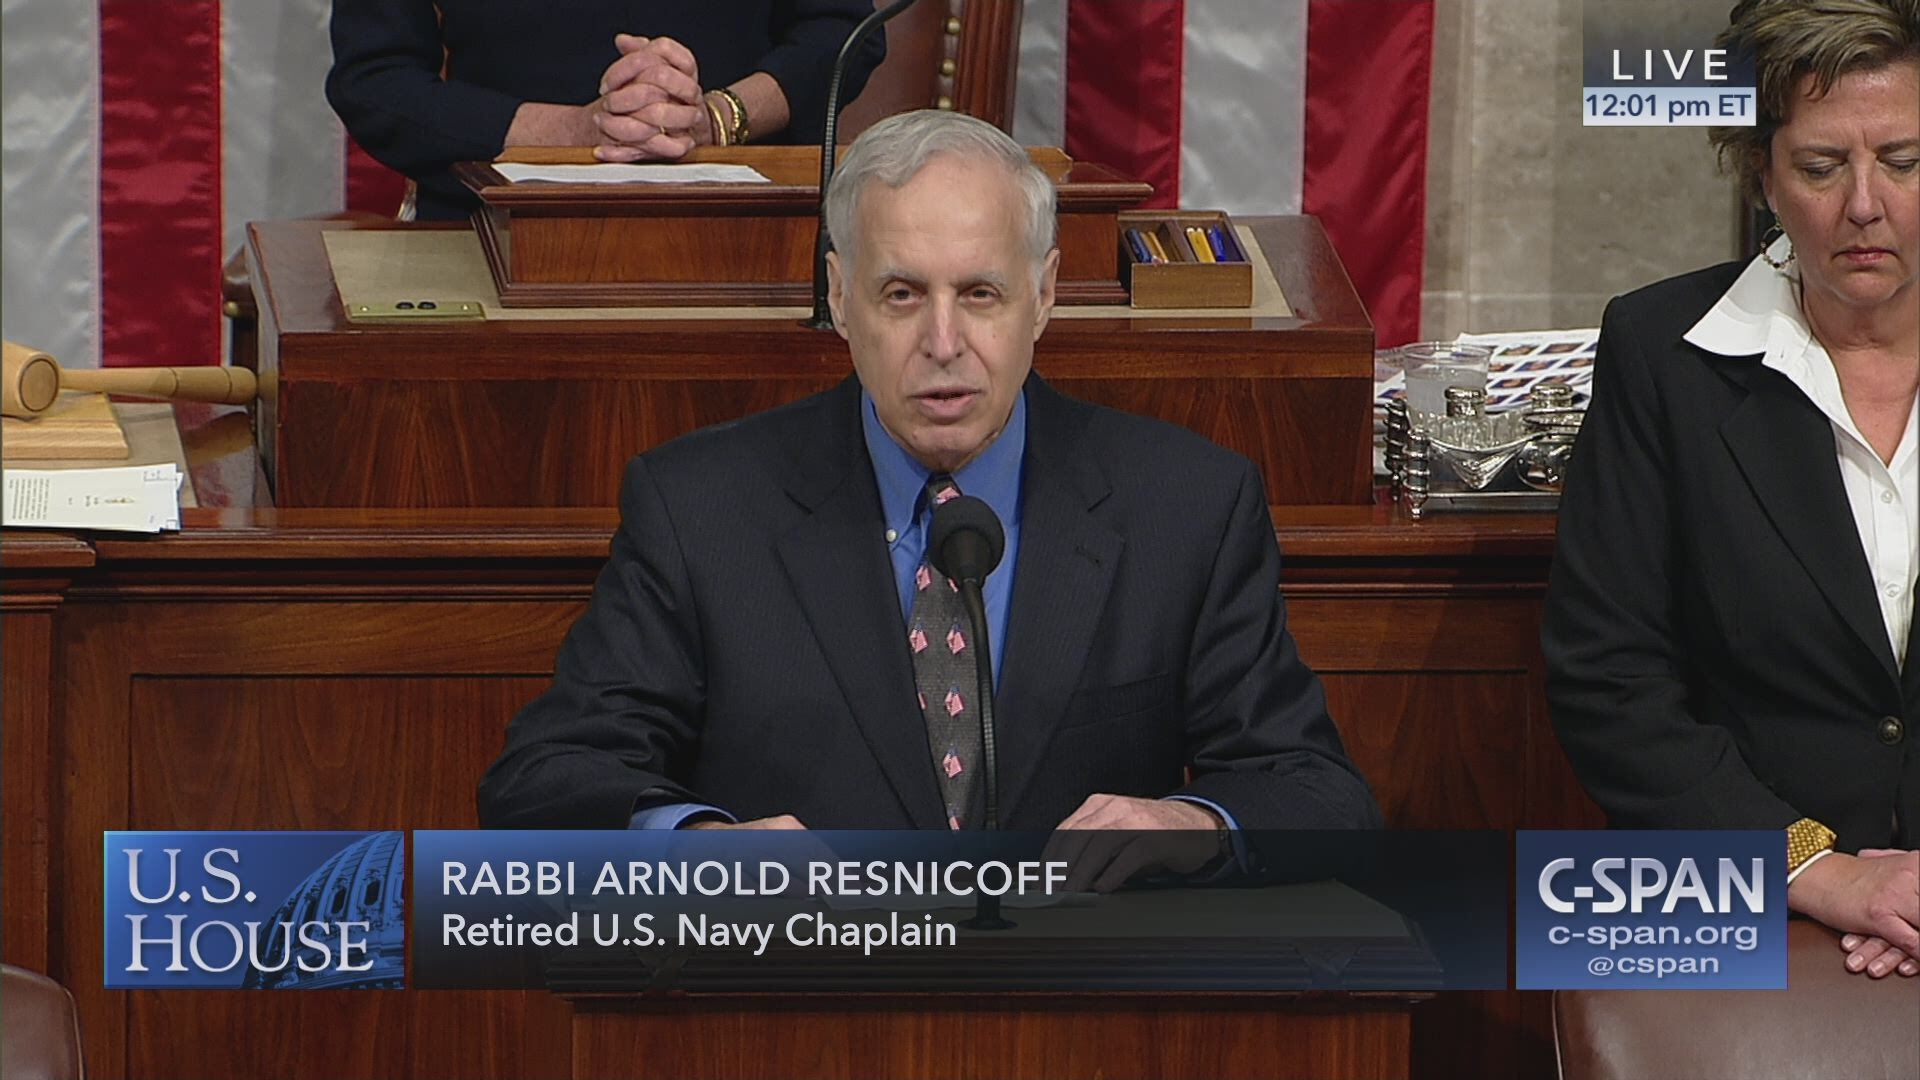 Amen: Congress moves to keep 'God' in daily prayer, thwart atheist movement